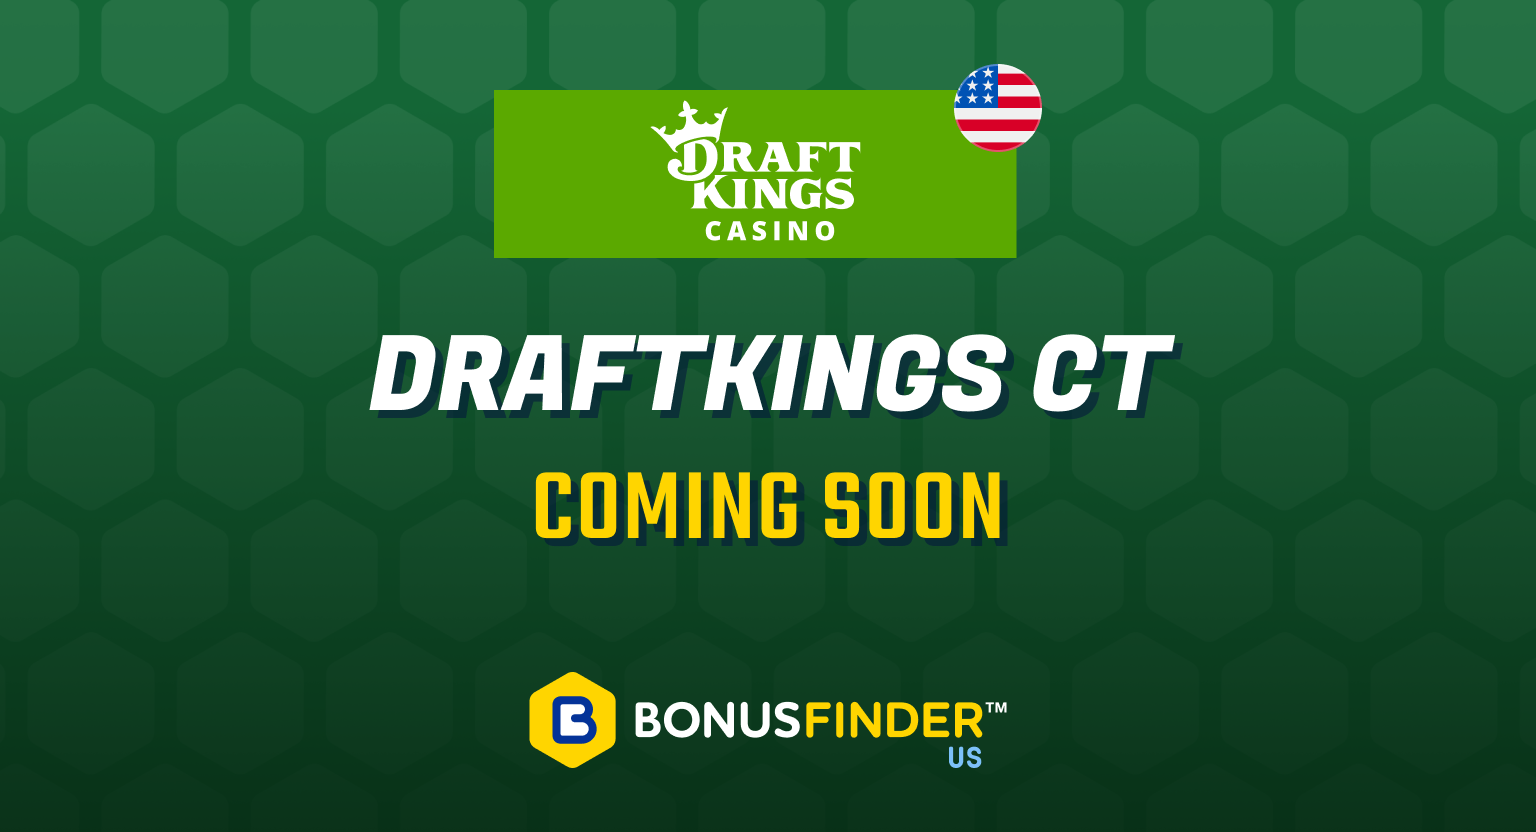 DraftKings Connecticut